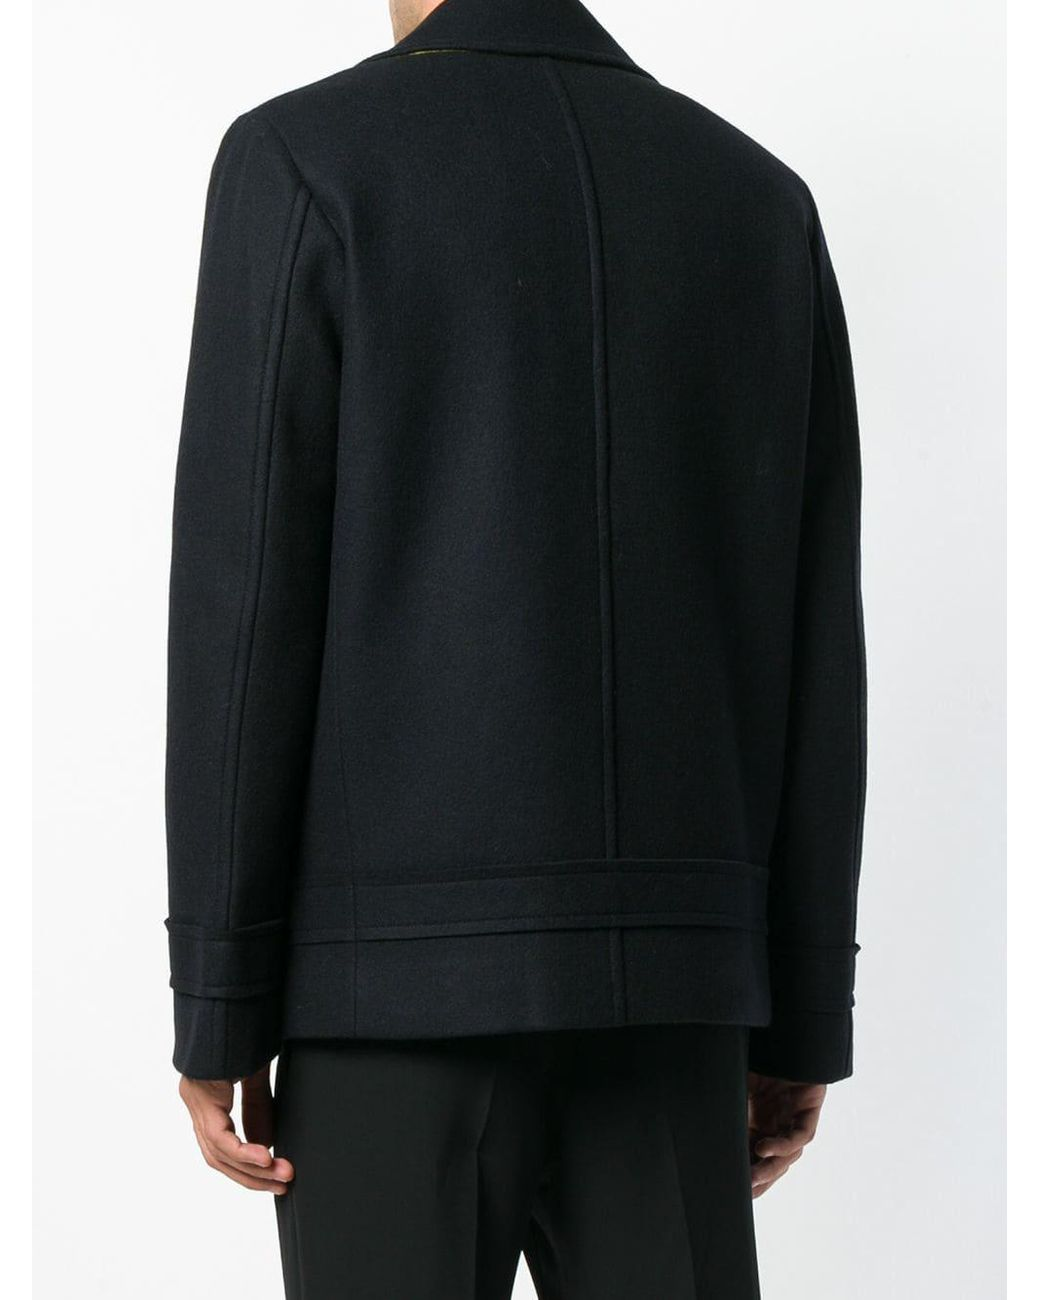 a77d5ea64 Helmut Lang Raw Band Peacoat in Black for Men - Lyst